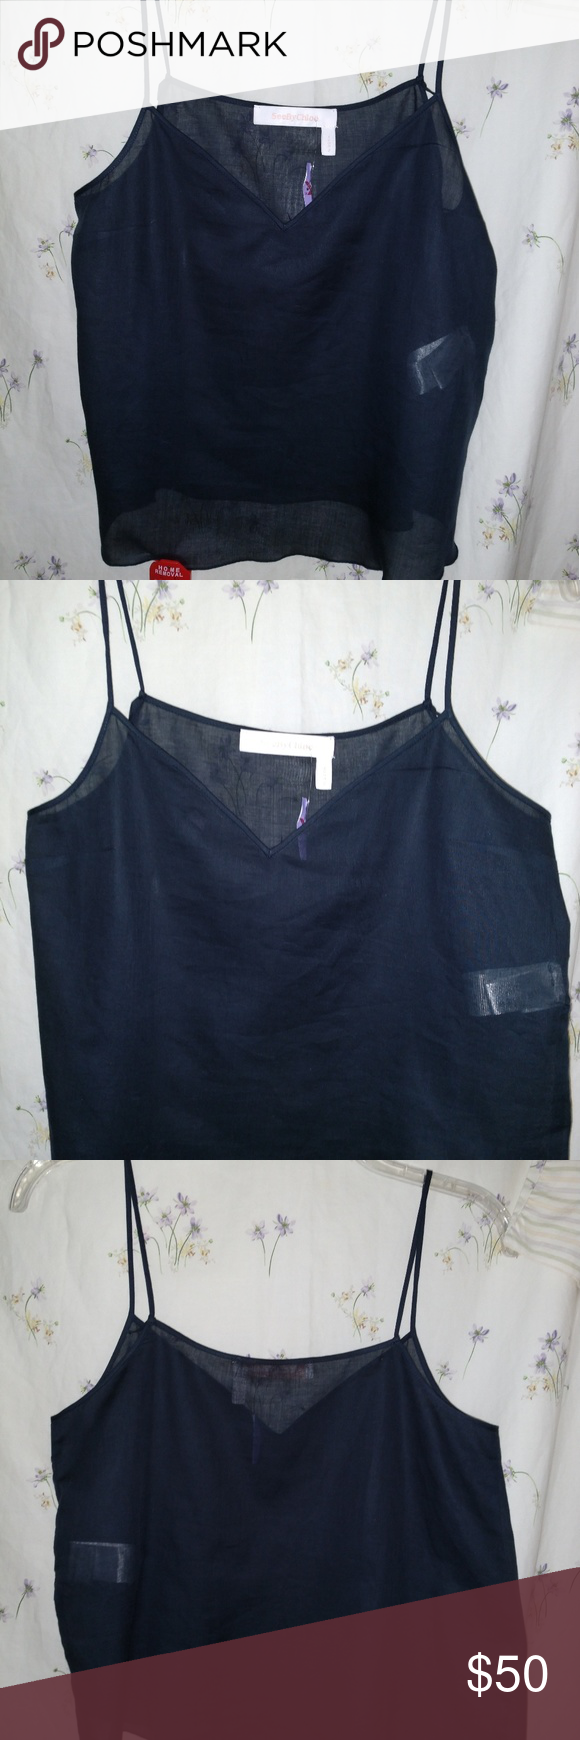 See by Chloe Designer sheer camisole NWT NWT See by Chloe Designer,  sheer blue camisole. Absolutely beautiful camisole. Lightweight and silky feeling against the skin. See By Chloe Tops Camisoles #seebychloe See by Chloe Designer sheer camisole NWT NWT See by Chloe Designer,  sheer blue camisole. Absolutely beautiful camisole. Lightweight and silky feeling against the skin. See By Chloe Tops Camisoles #seebychloe